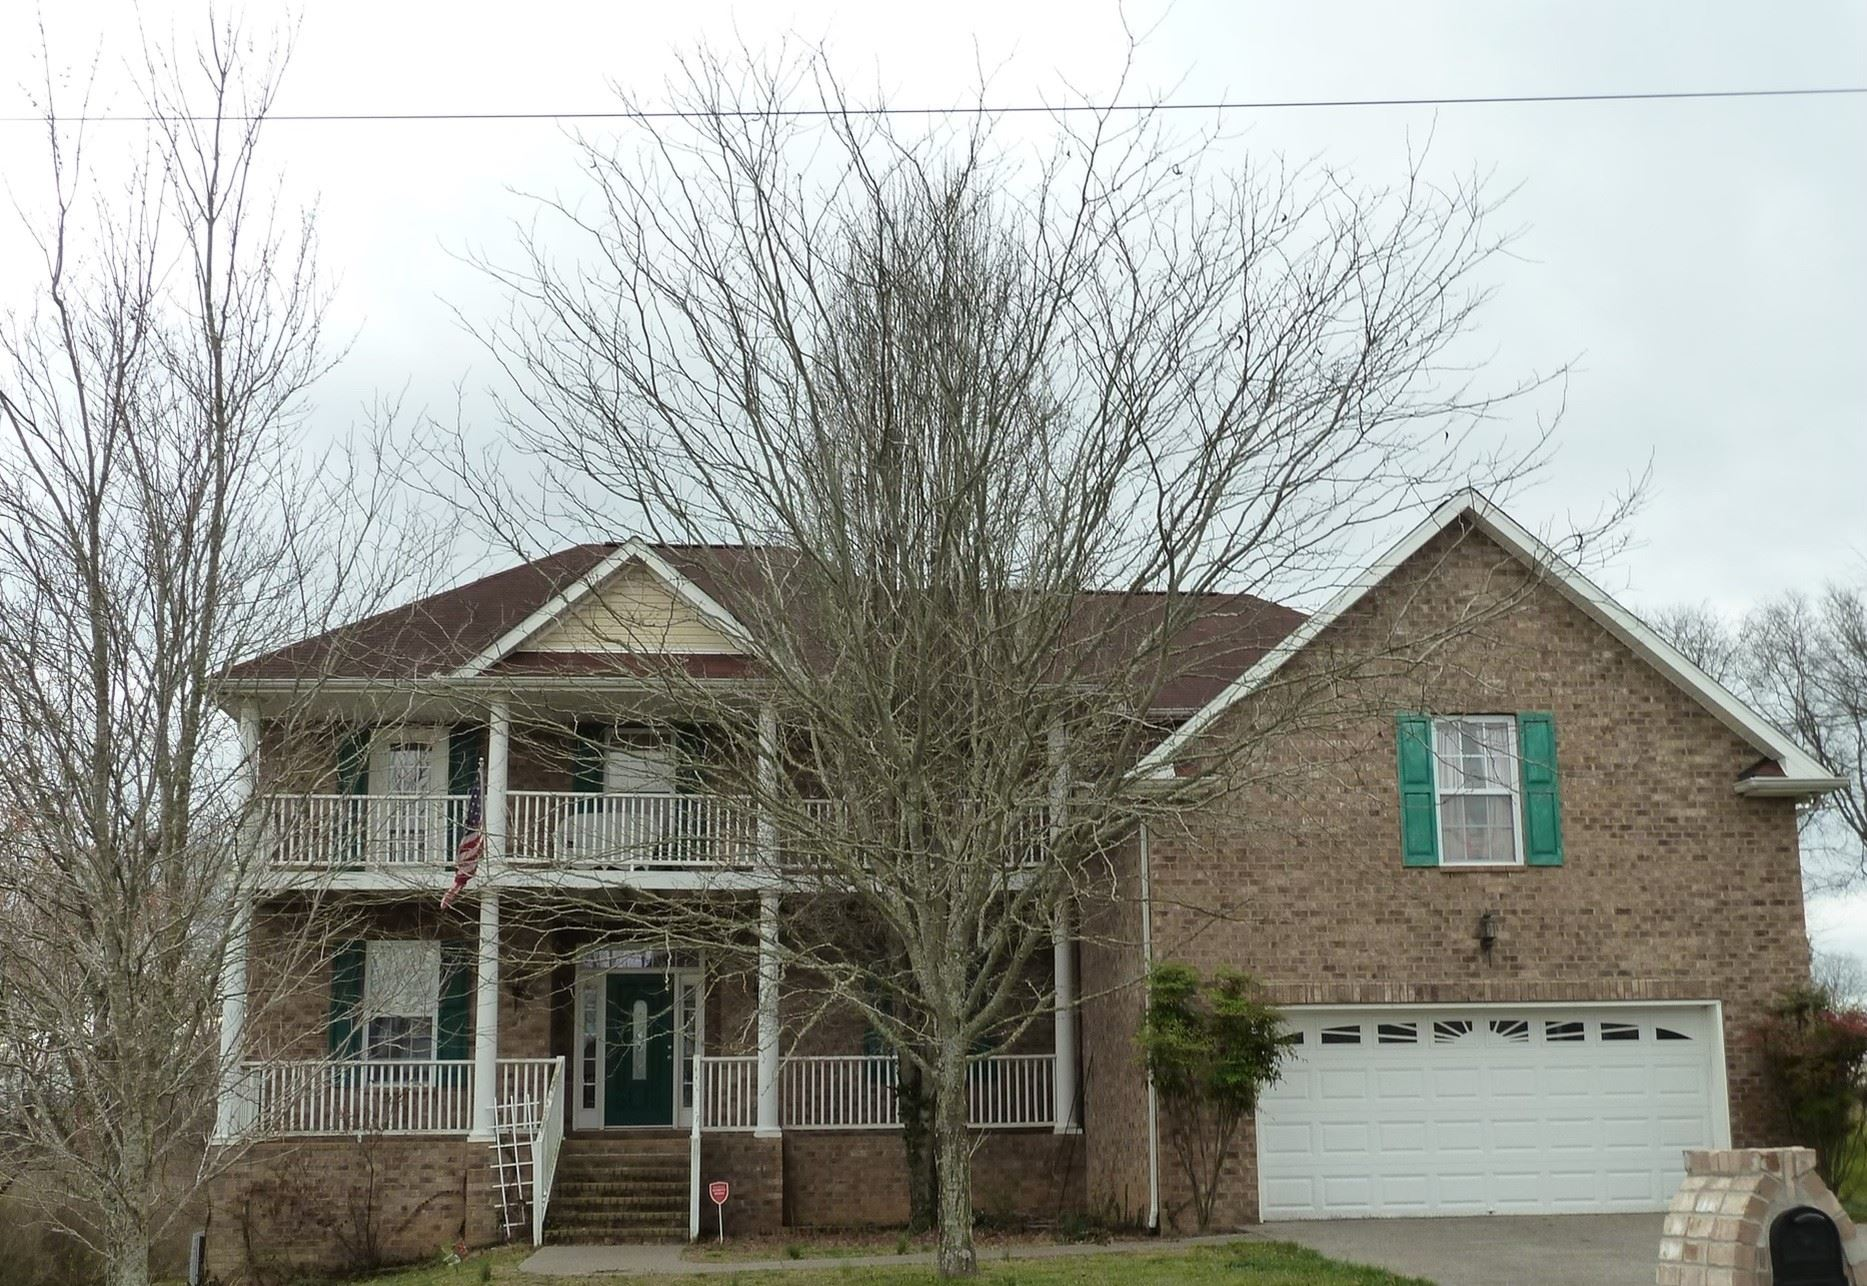 309 Remington Ave, Gallatin, TN 37066 - MLS#: 2235774